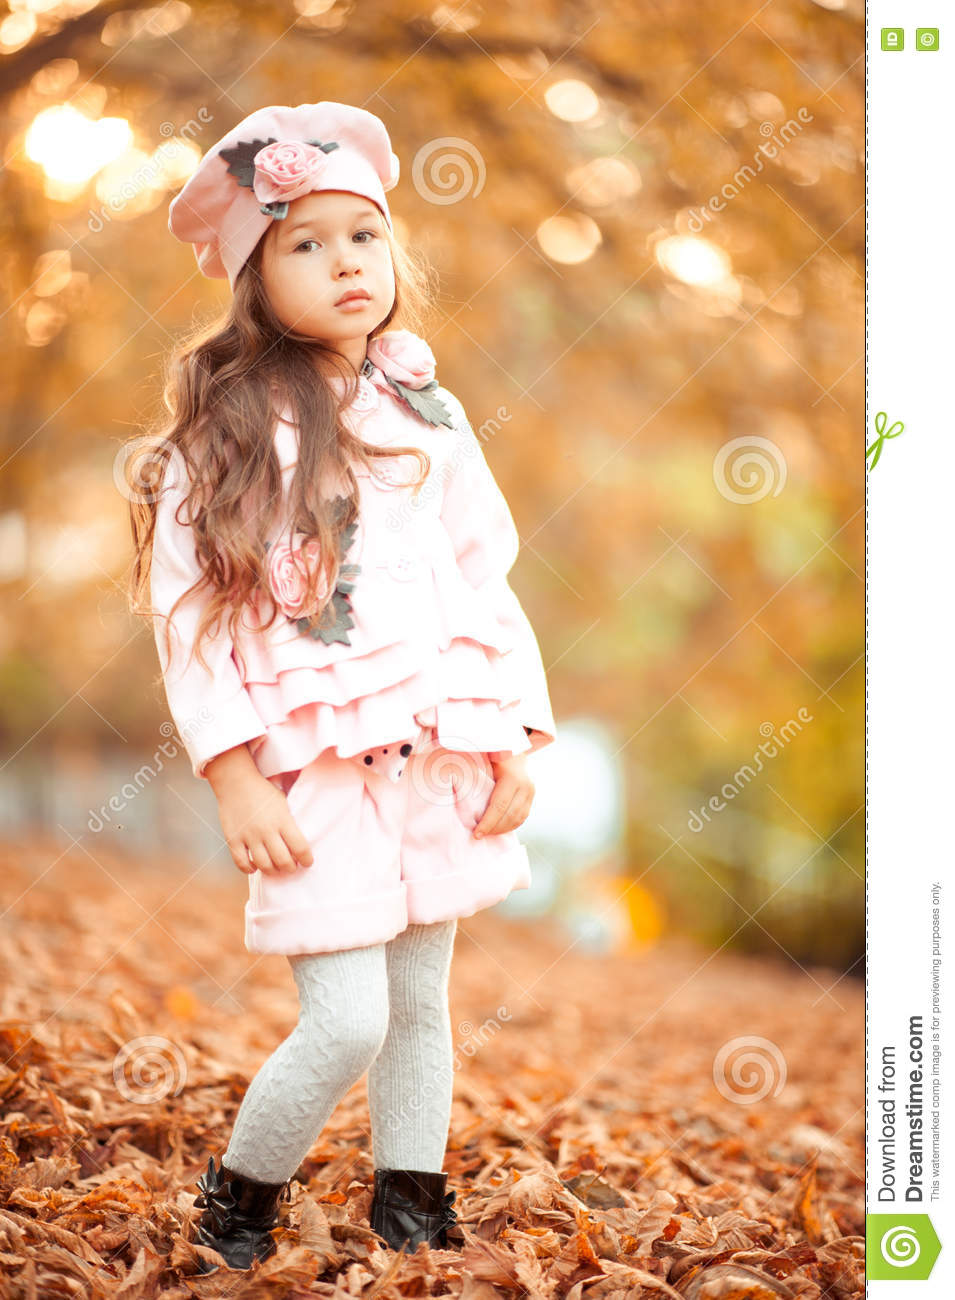 f3ae9da8d10f Cute Kid Girl Wearing Autumn Clothes Outdoors Stock Image - Image of ...